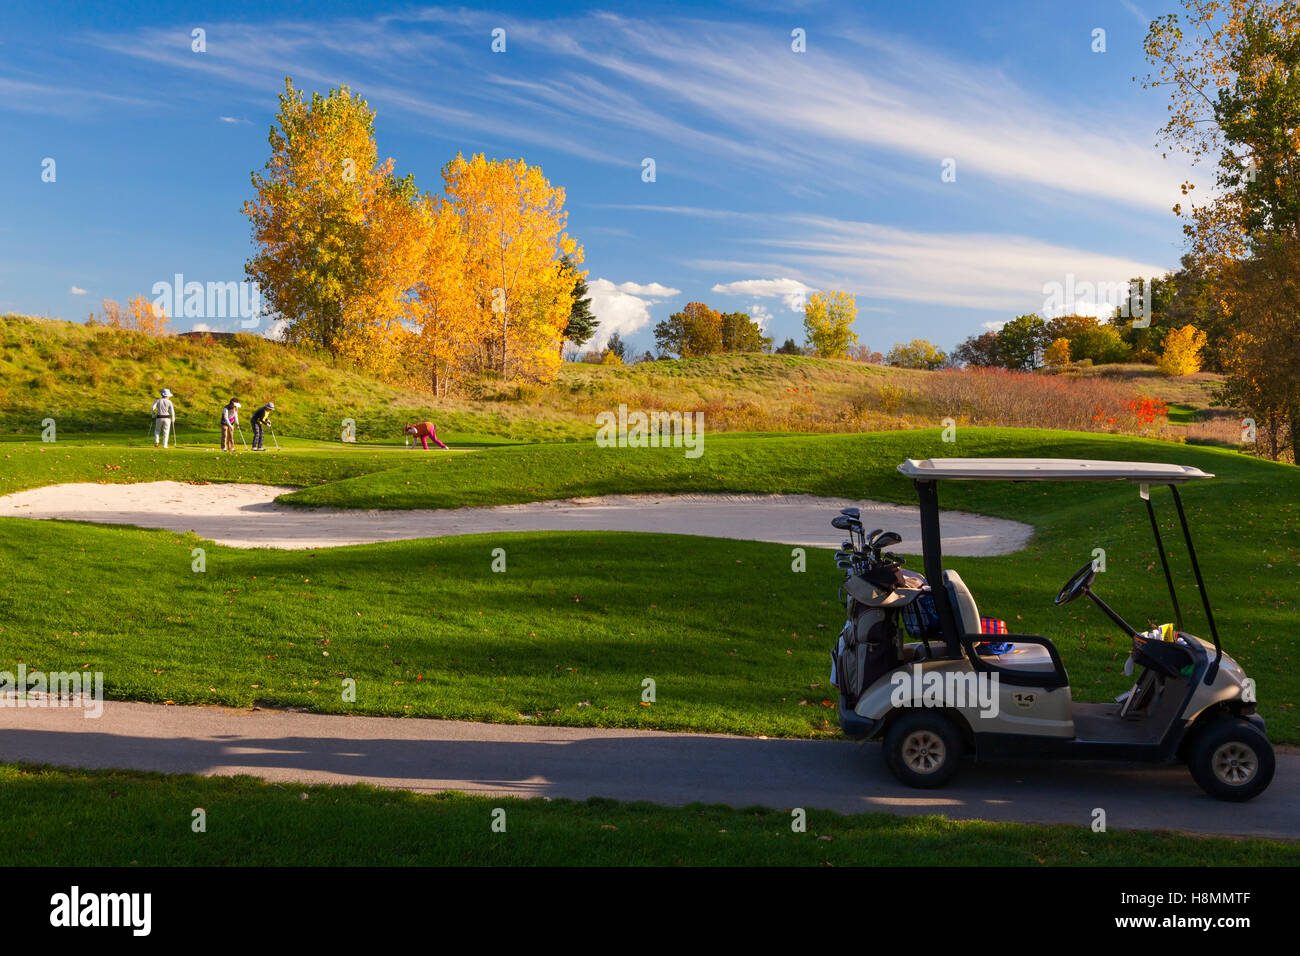 Golfers playing golf at Paris Grand Golf & Country Club in Paris, Ontario, Canada. - Stock Image